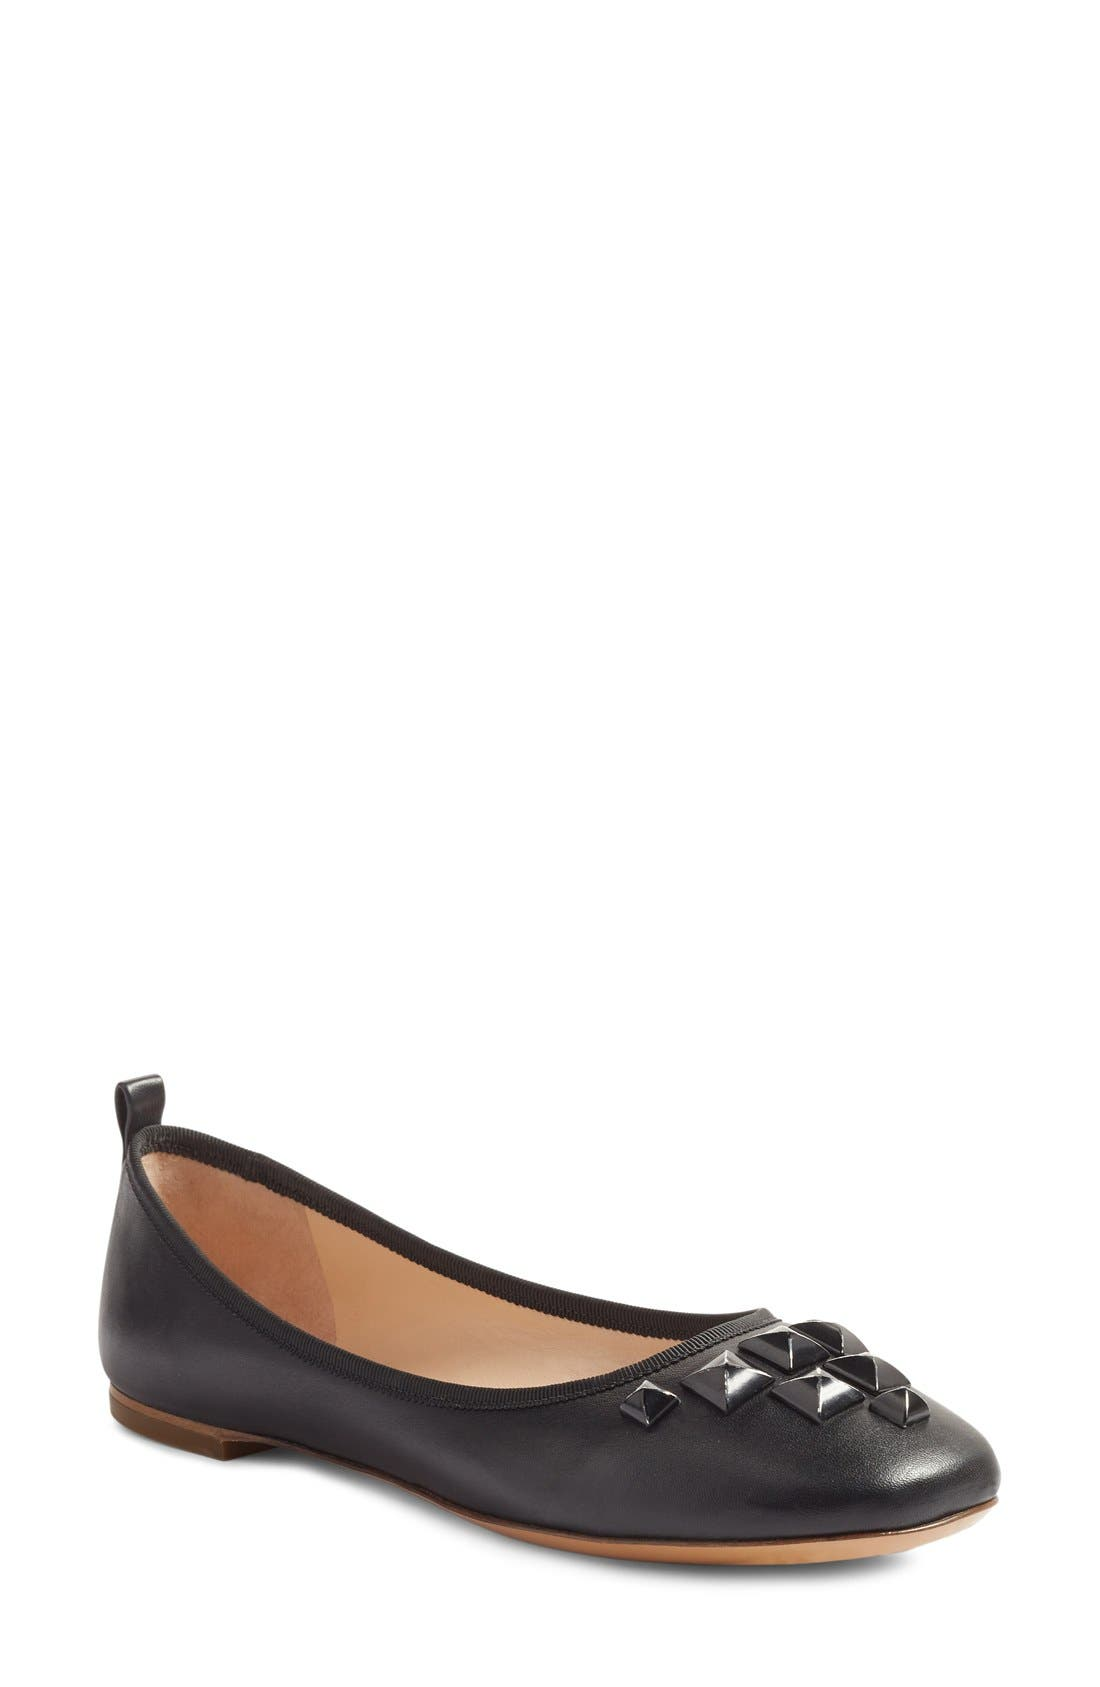 Main Image - MARC JACOBS Cleo Studded Ballet Flat (Women)